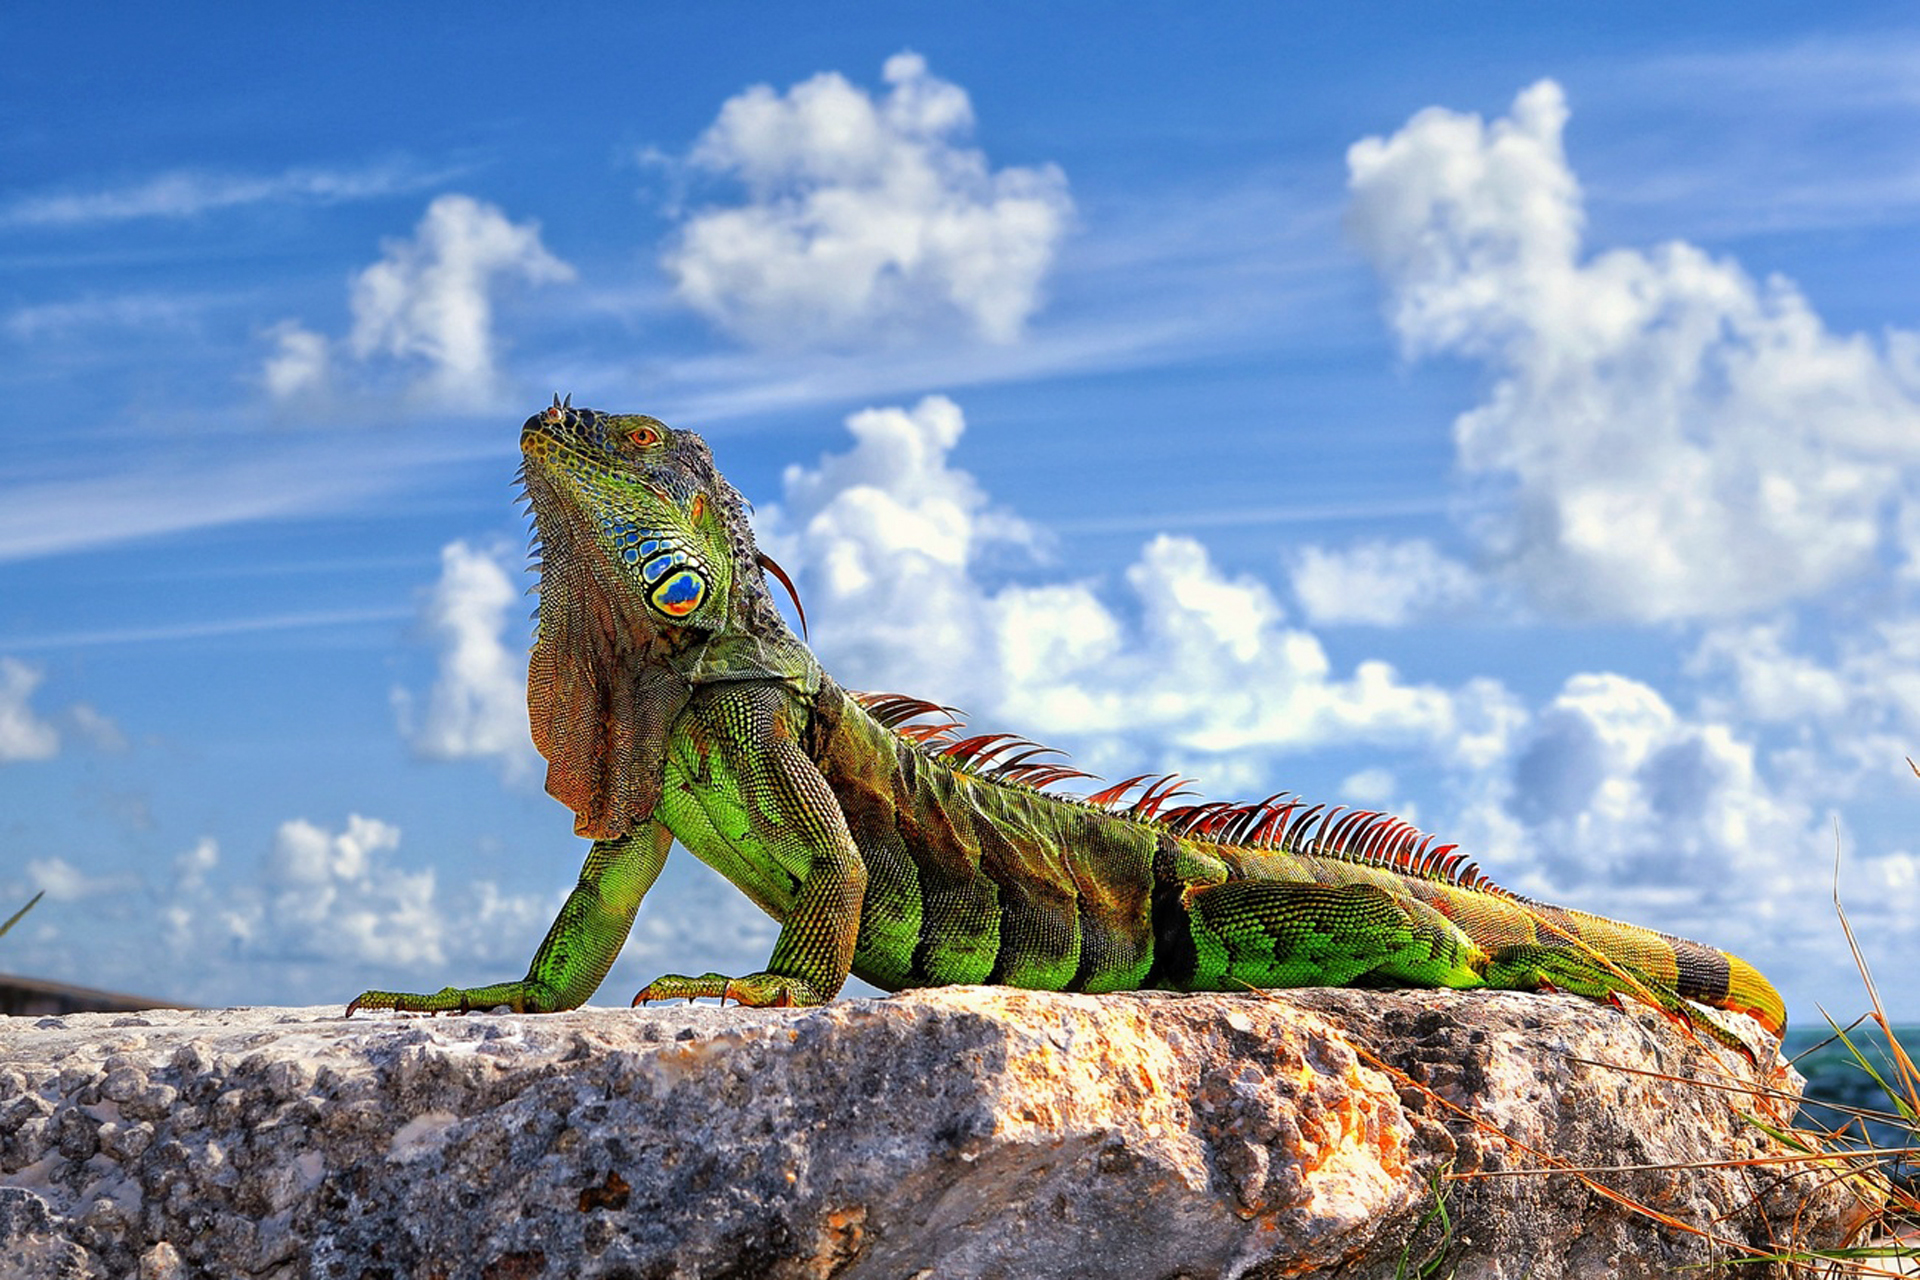 Hd Backgroumds: Iguana HD Wallpapers & Images (High Definition